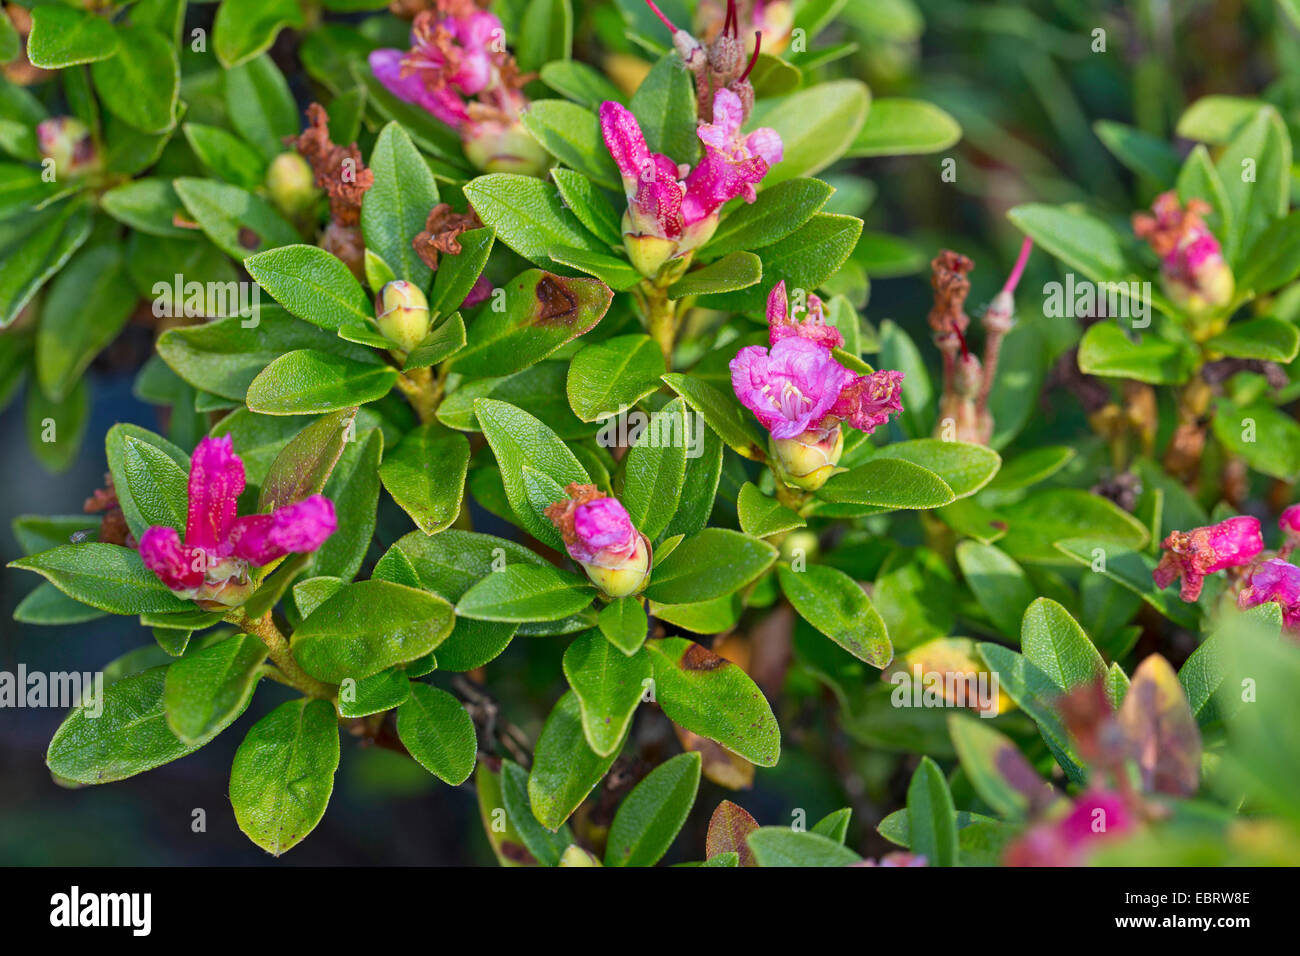 alpenrose flowers stockfotos alpenrose flowers bilder seite 2 alamy. Black Bedroom Furniture Sets. Home Design Ideas